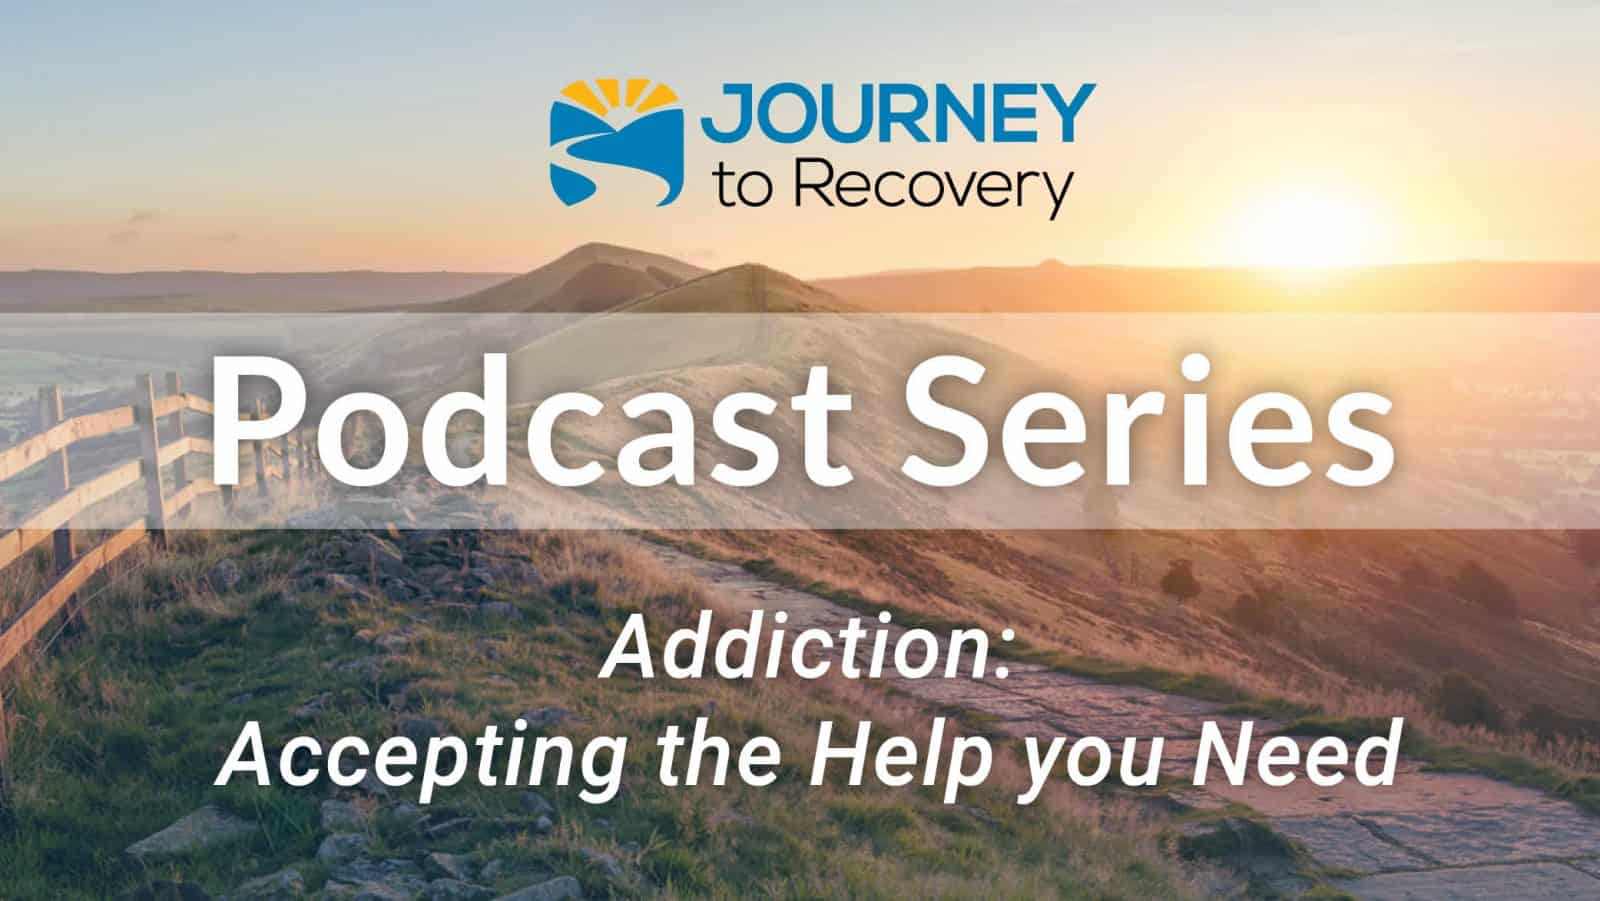 Addiction: Accepting the Help You Need